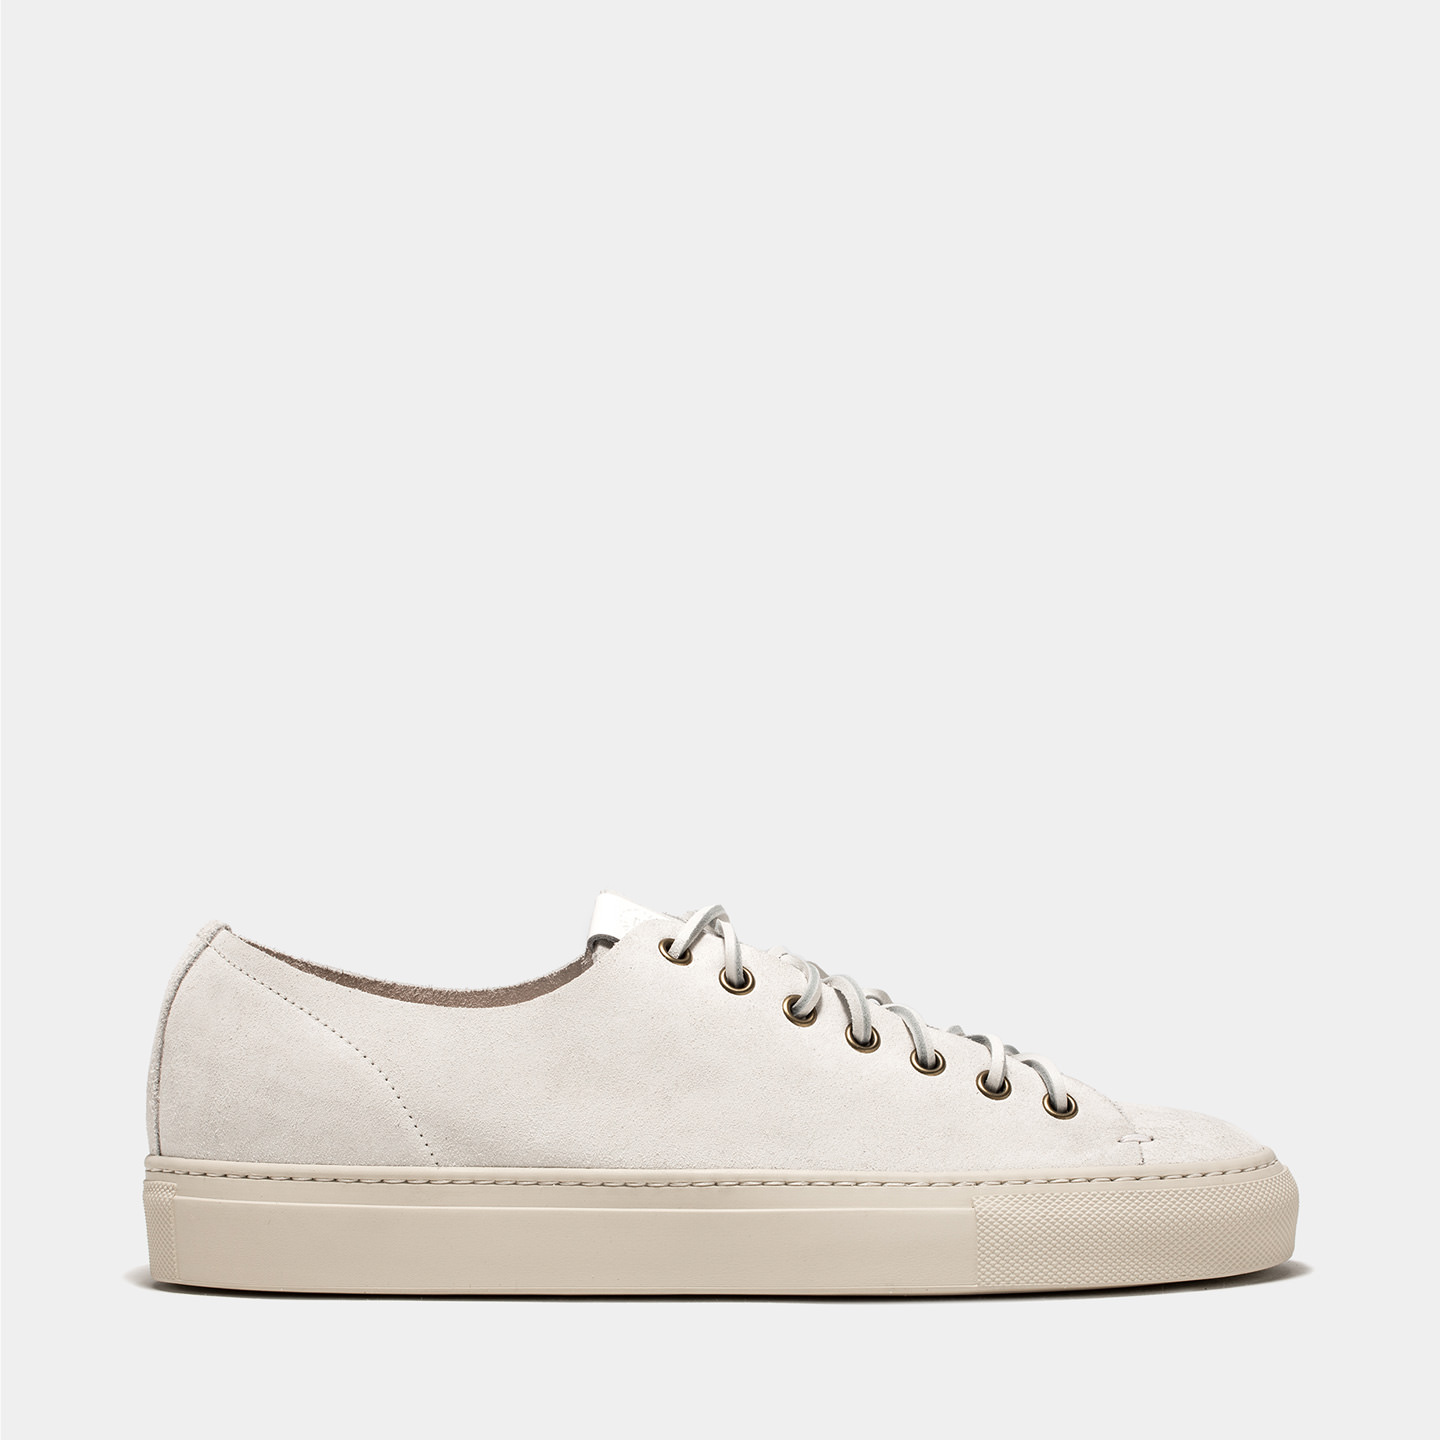 BUTTERO: WHITE SUEDE TANINO SNEAKERS